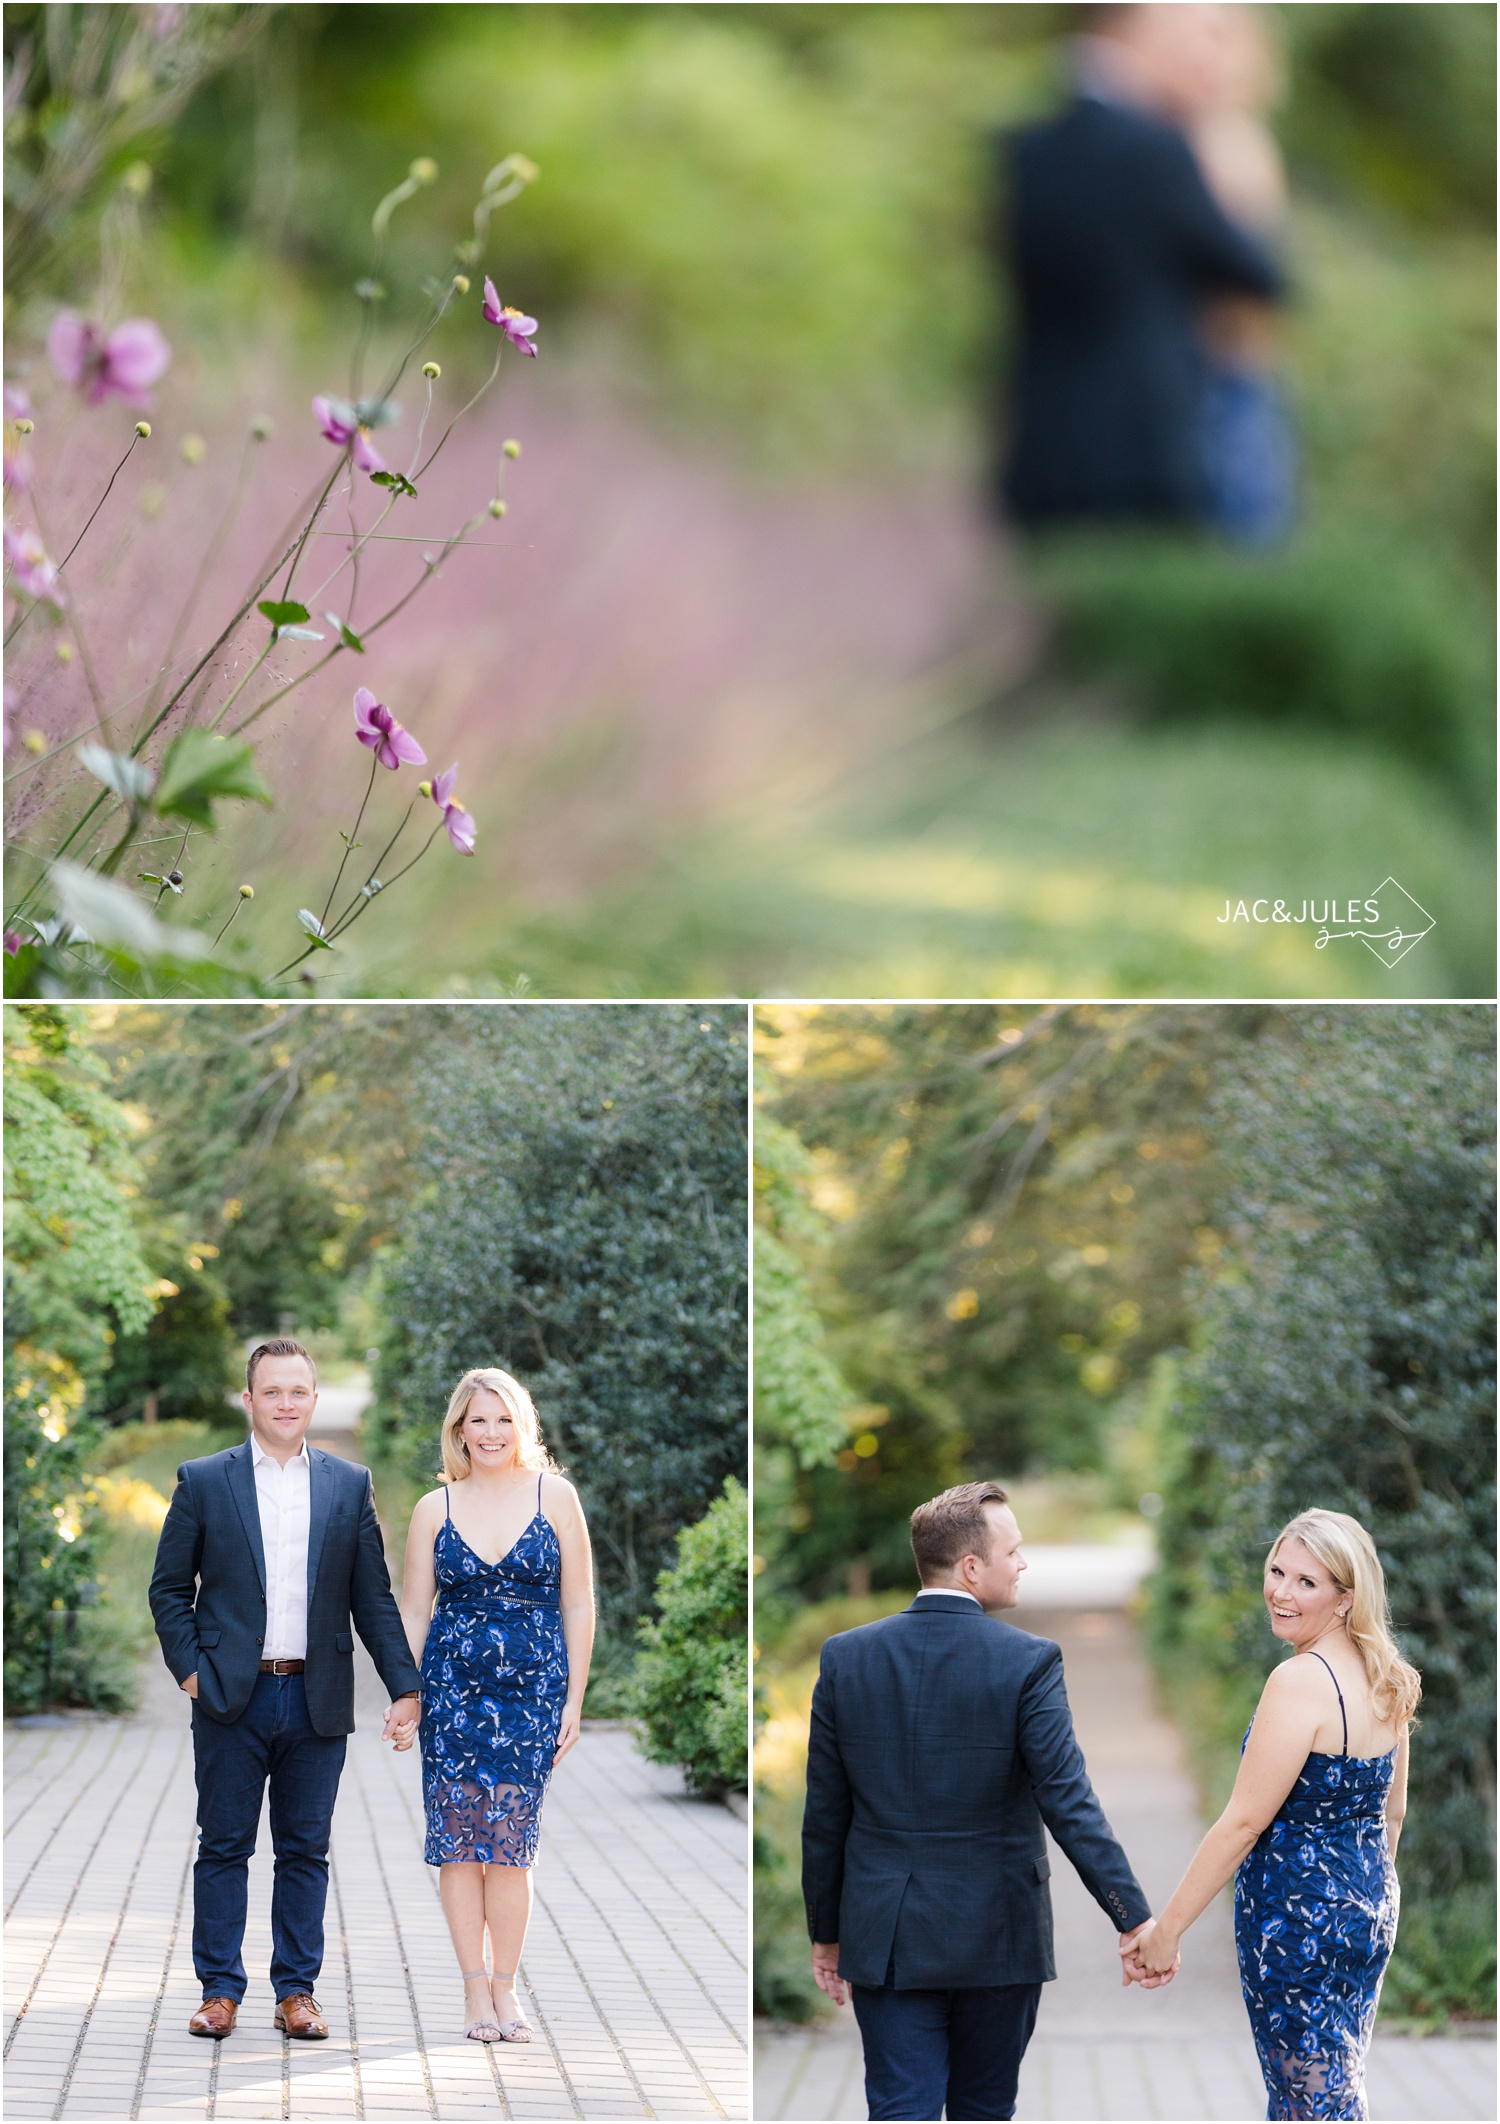 Traditional Engagement photos at Van Vleck House and Gardens in Montclair, NJ.